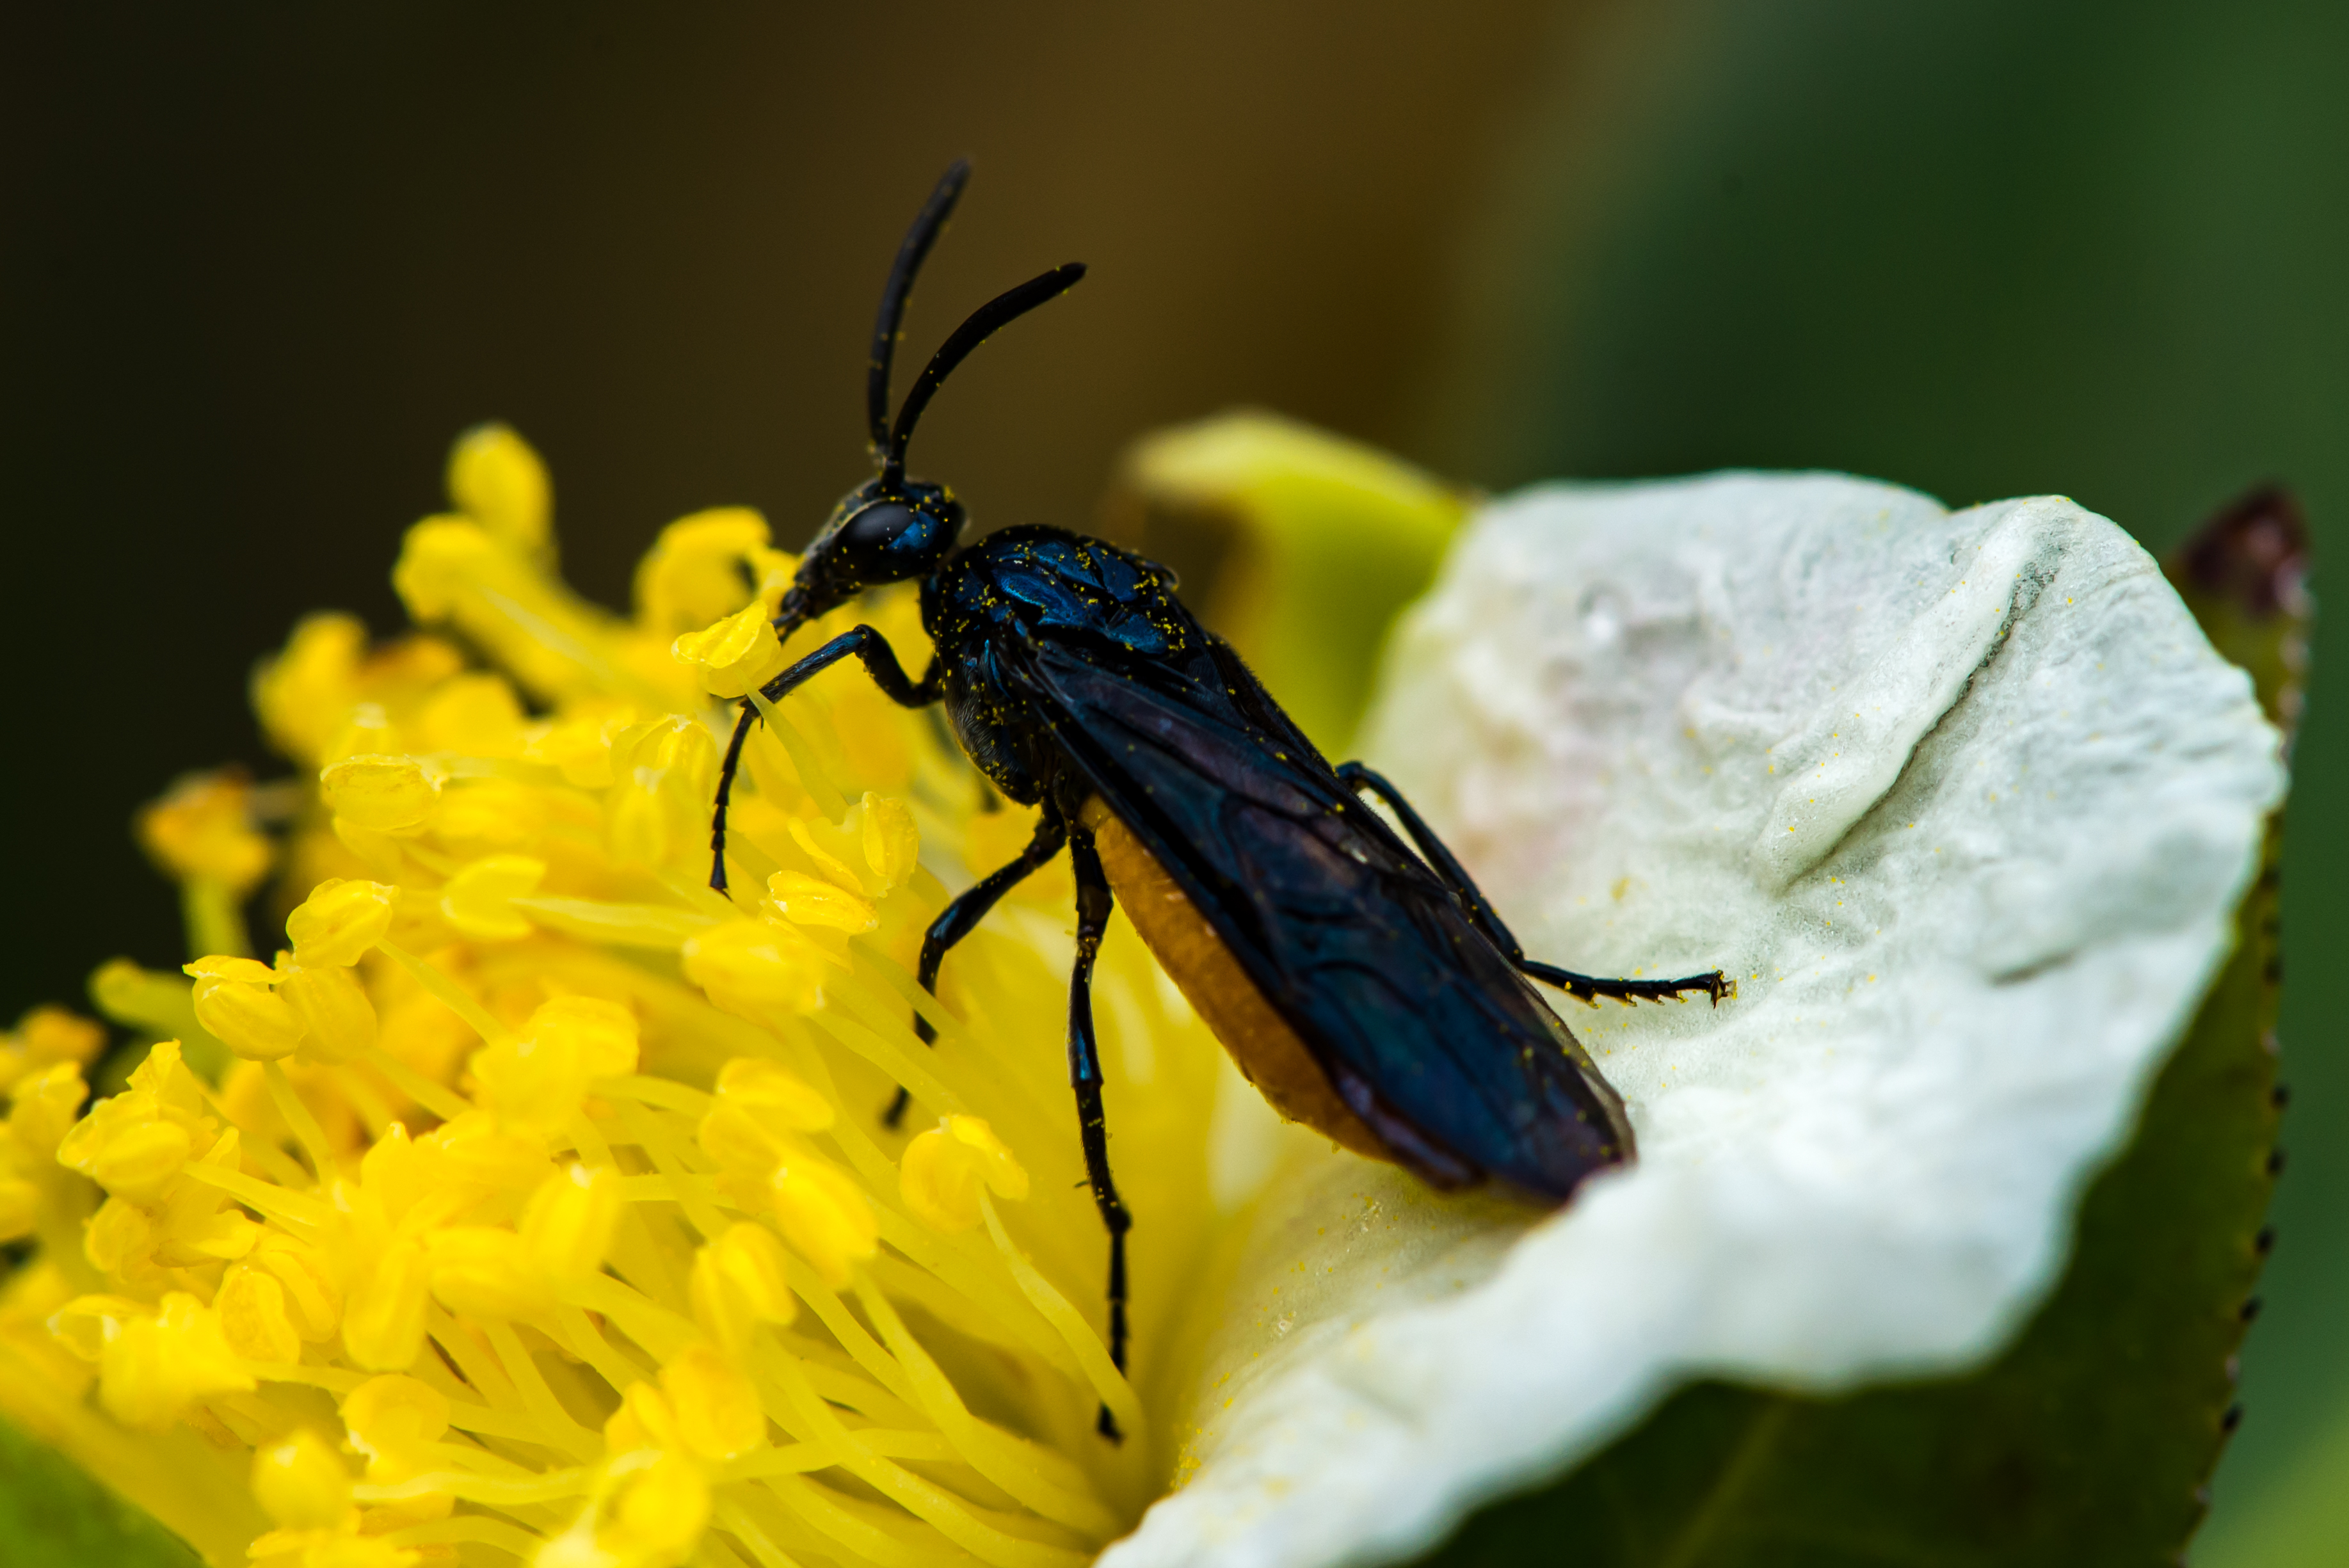 Close up VN, Macro, Insect, Depth of field, Animal, HQ Photo